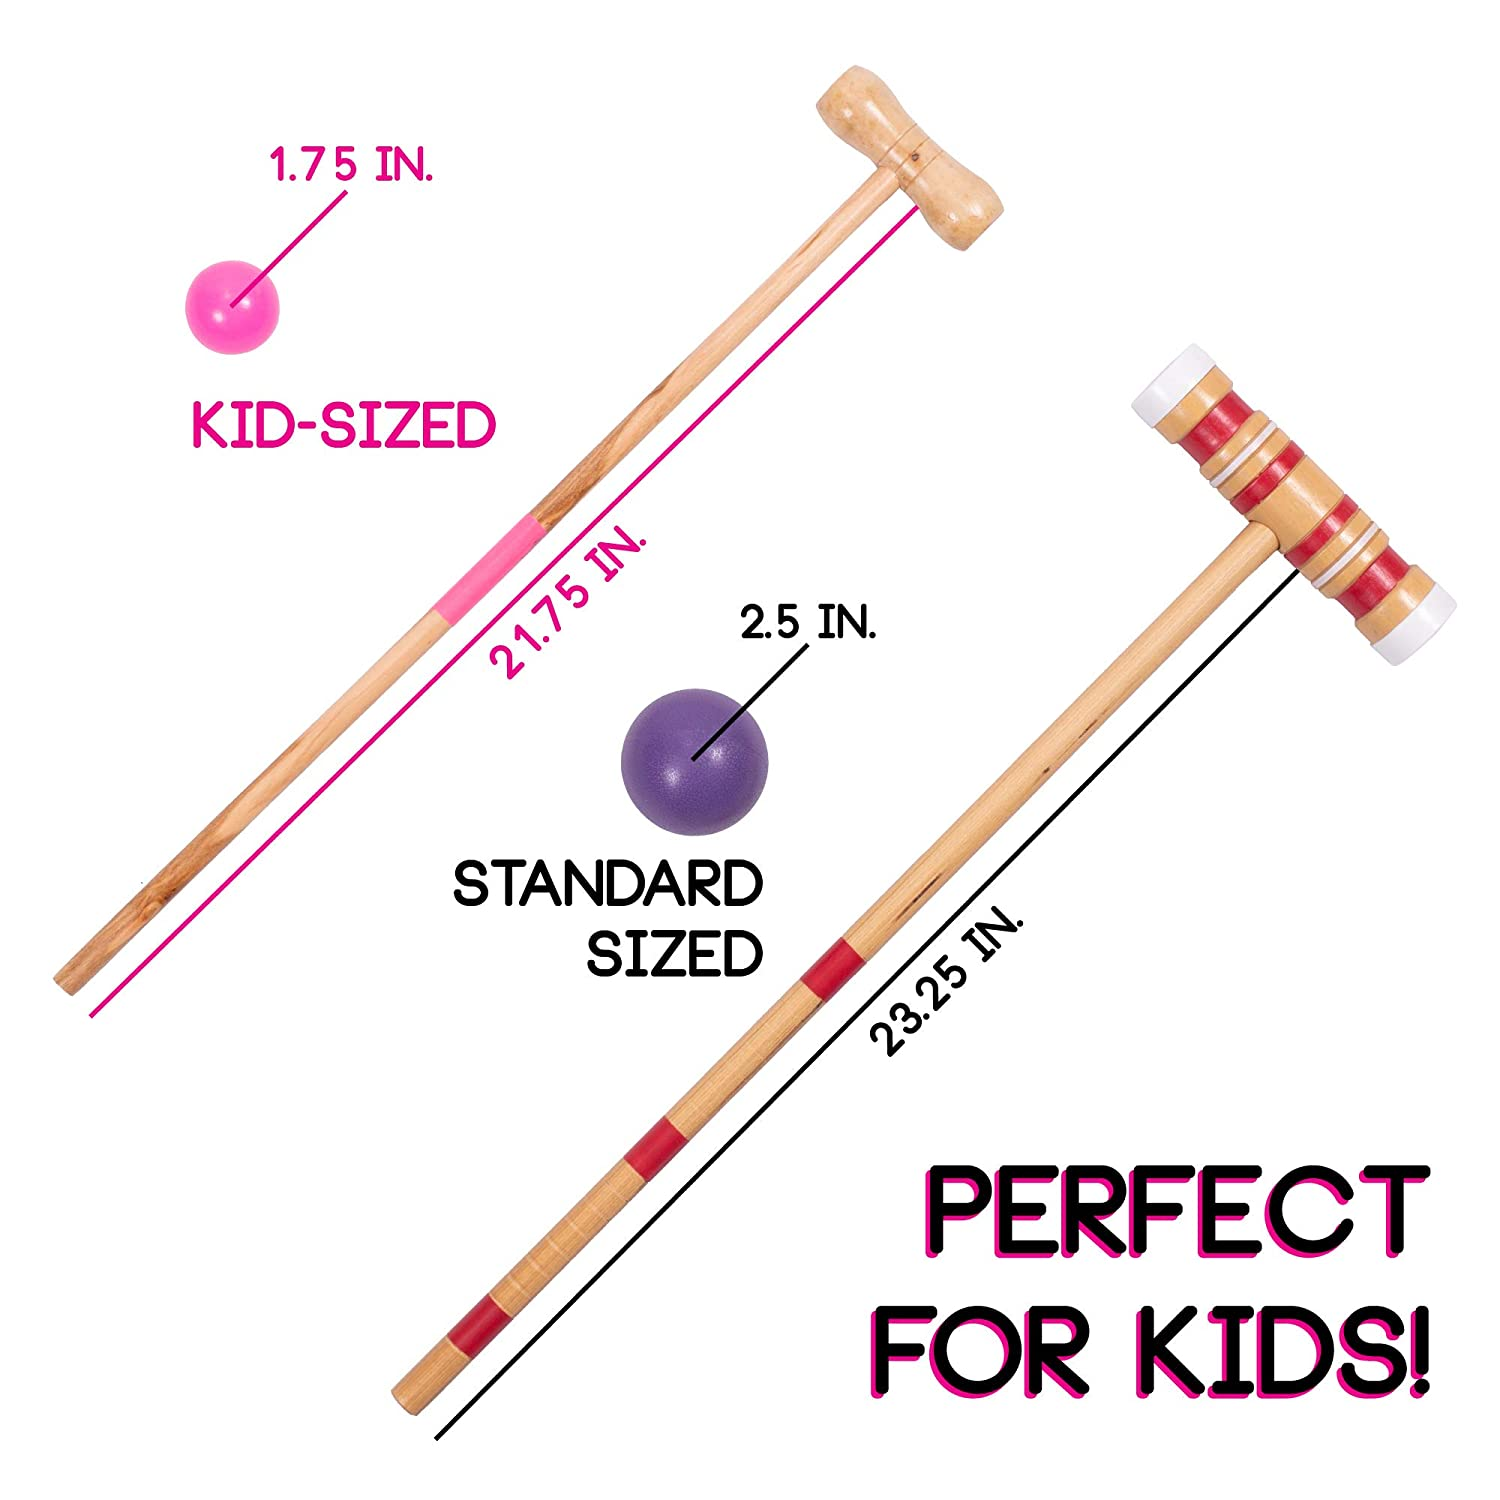 Wickets Great for Birthday Parties Kids Croquet Set for 4-Players BBQs Picnics Classic Outdoor Lawn Game for Children and a Carrying Bag for Portability and More Comes with Mallets Balls